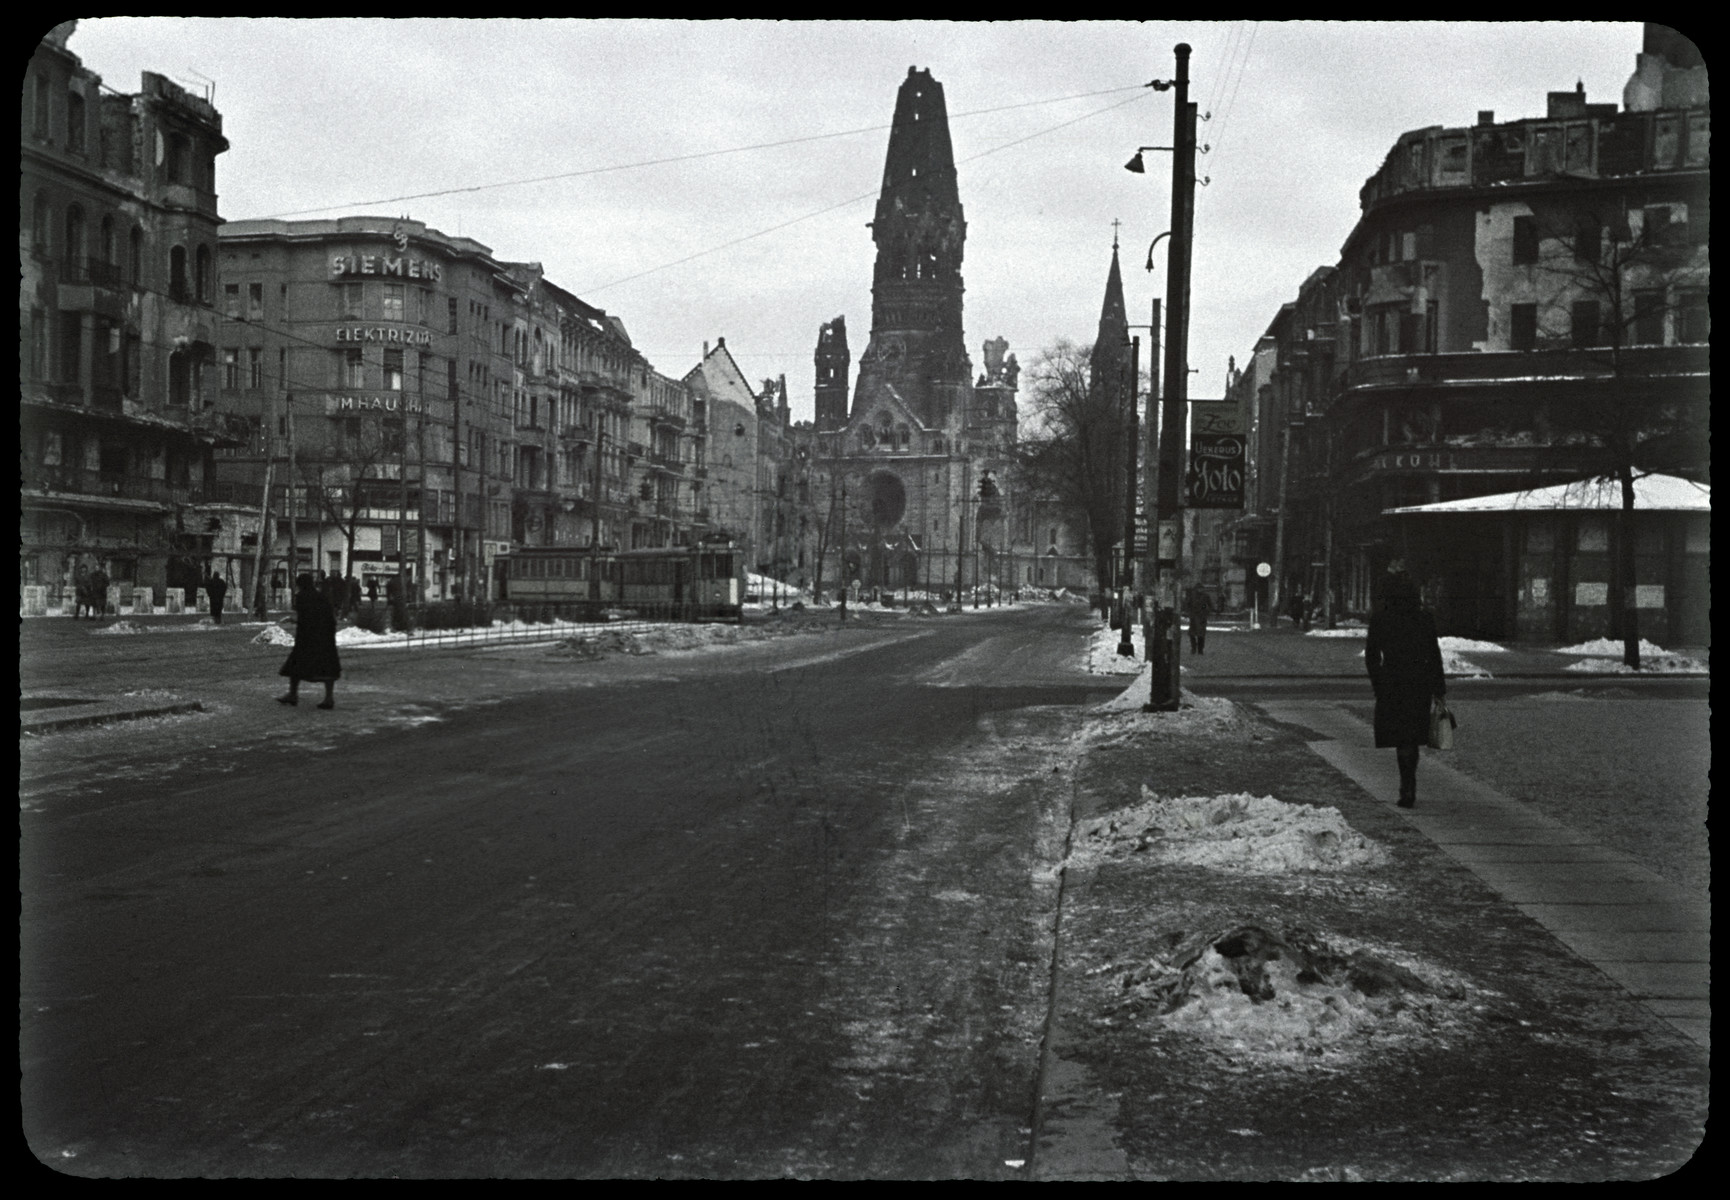 Street scene in postwar Berlin.